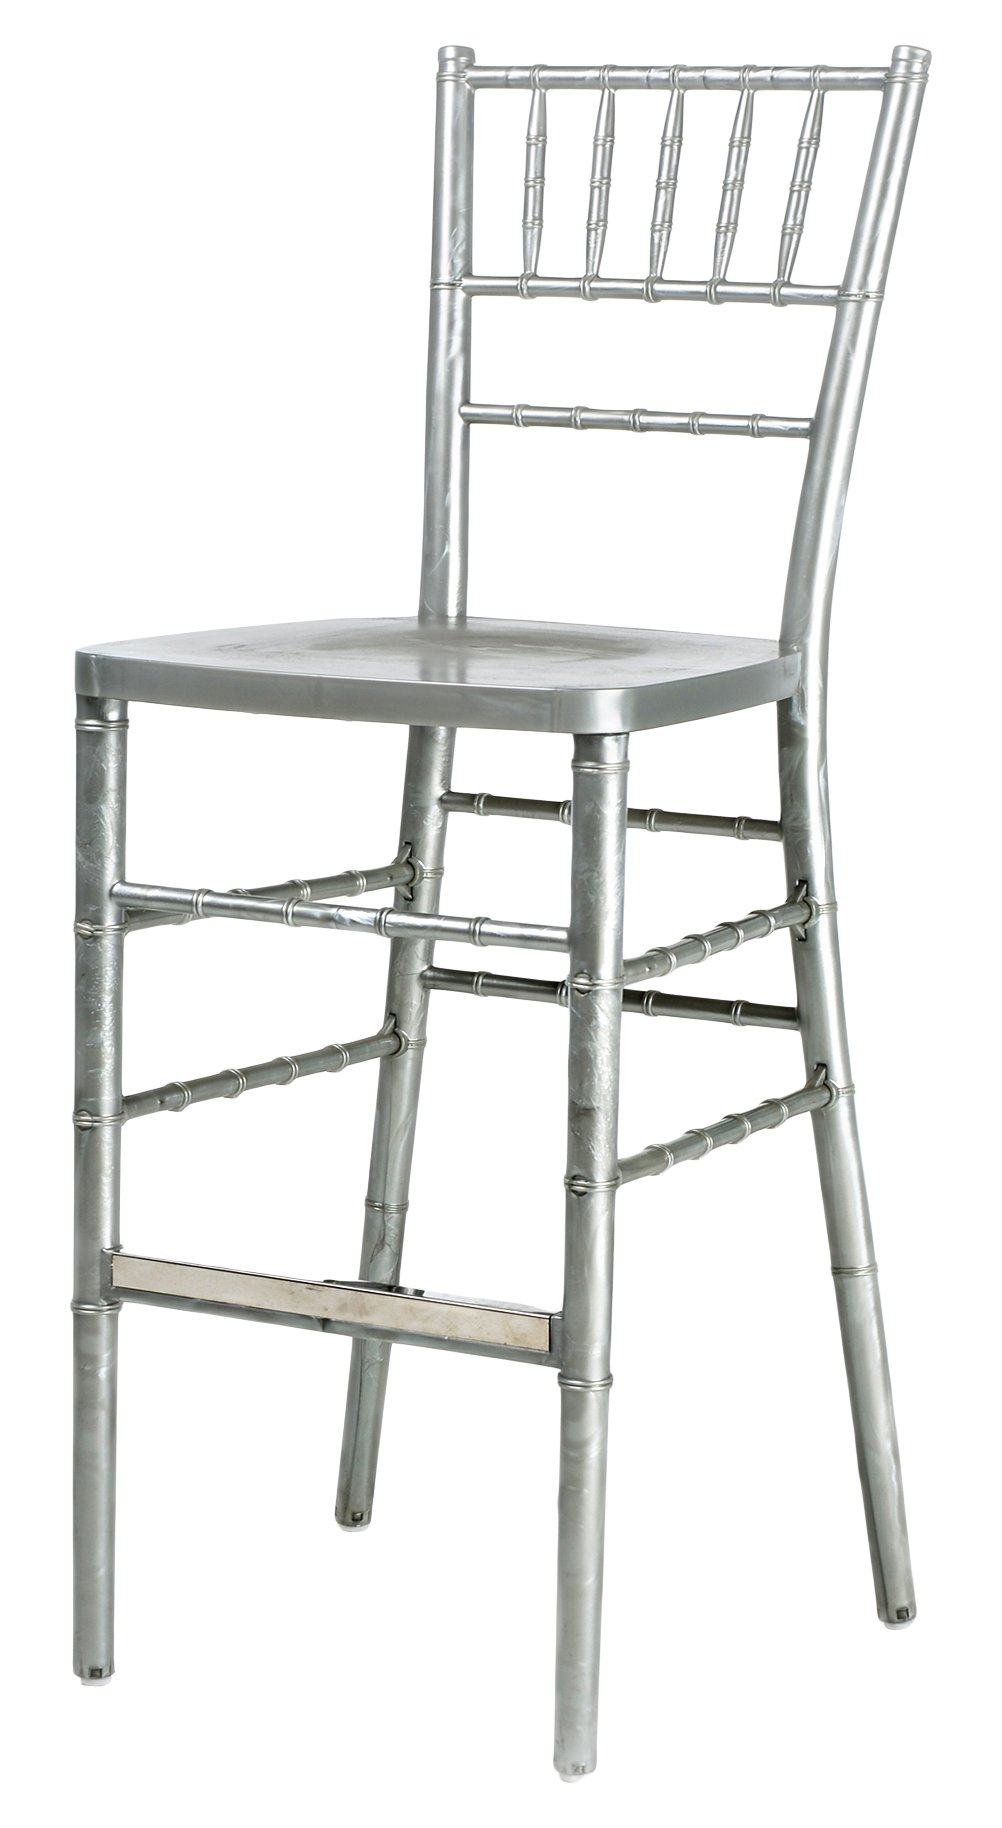 CSP Events RB-800K-SL ''Max'' Chiavari Chair Steel Core with ED Resin, 36'' Height, 16'' Width, 16'' Length, Silver